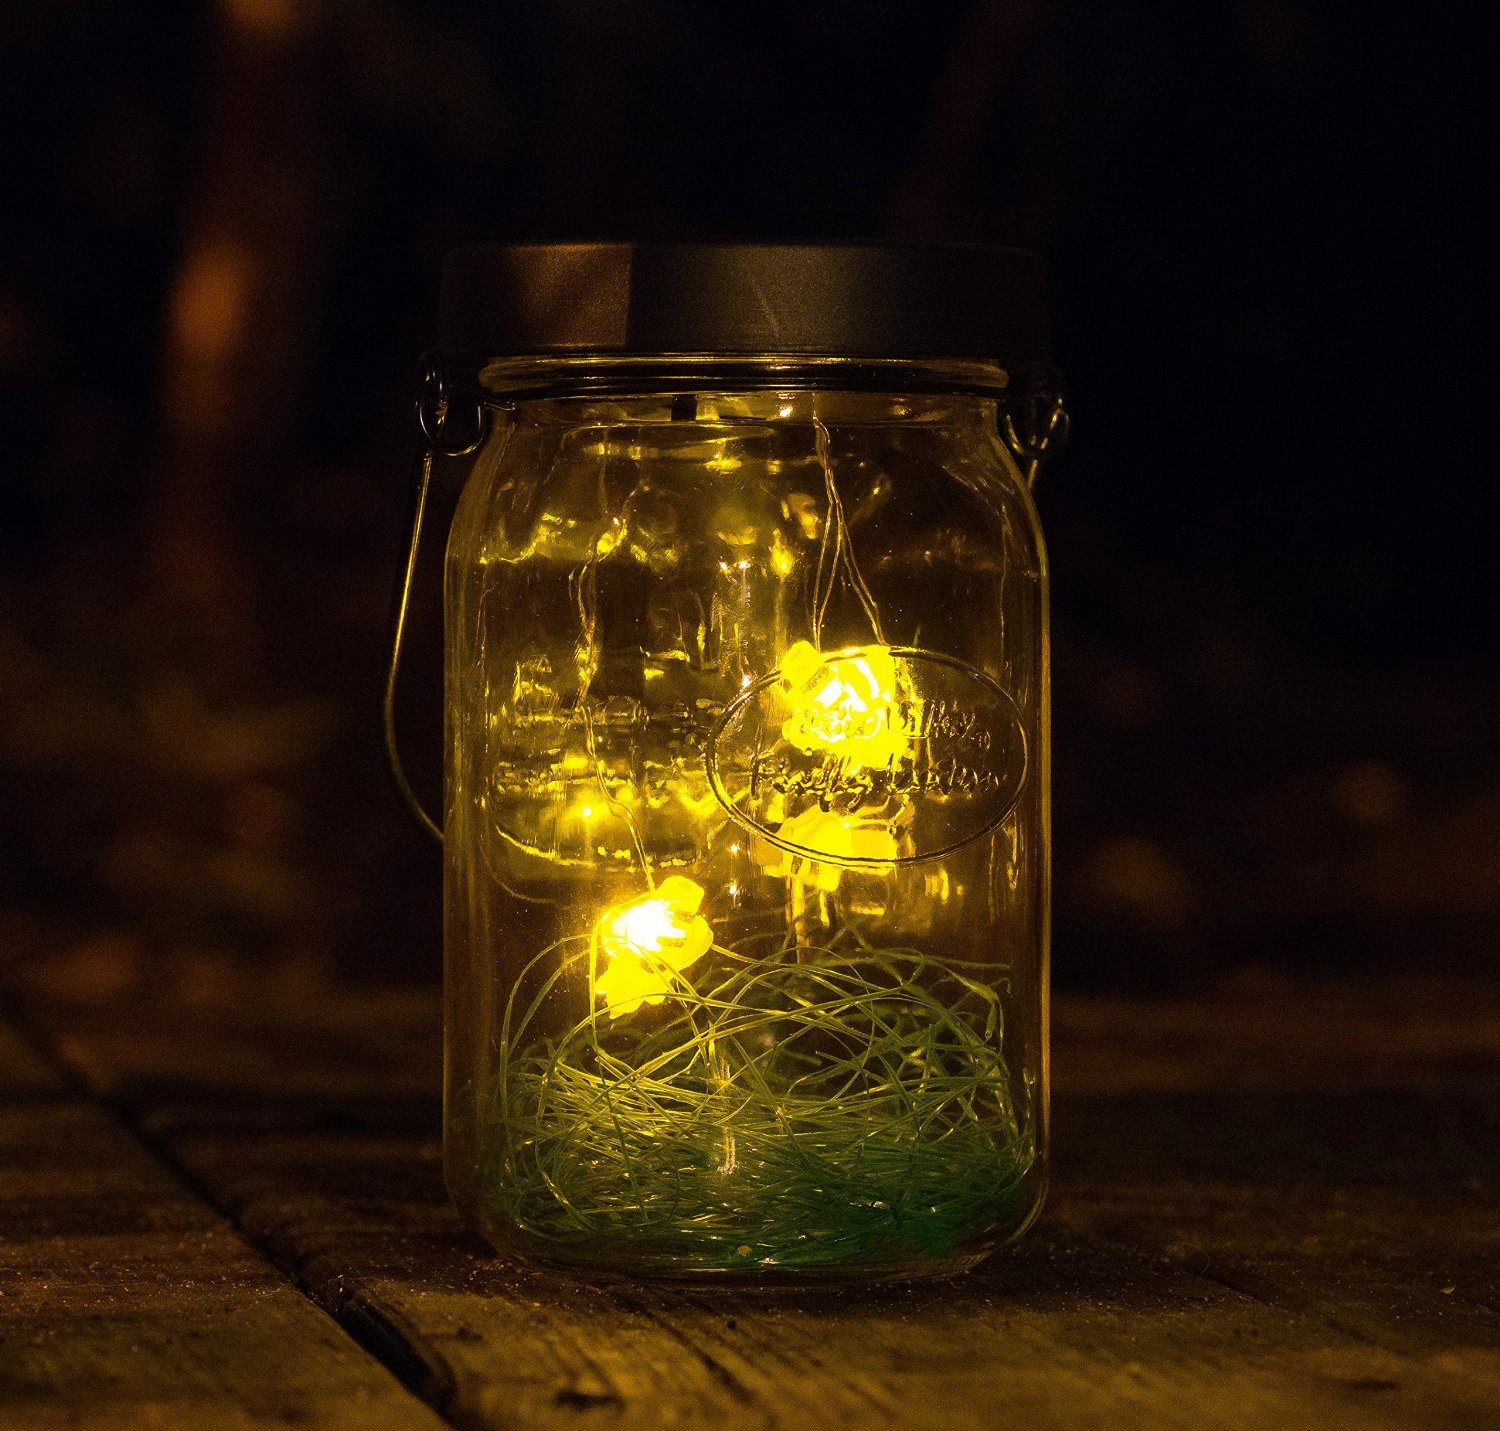 Solar Powered Decorative Jar Light LED Light